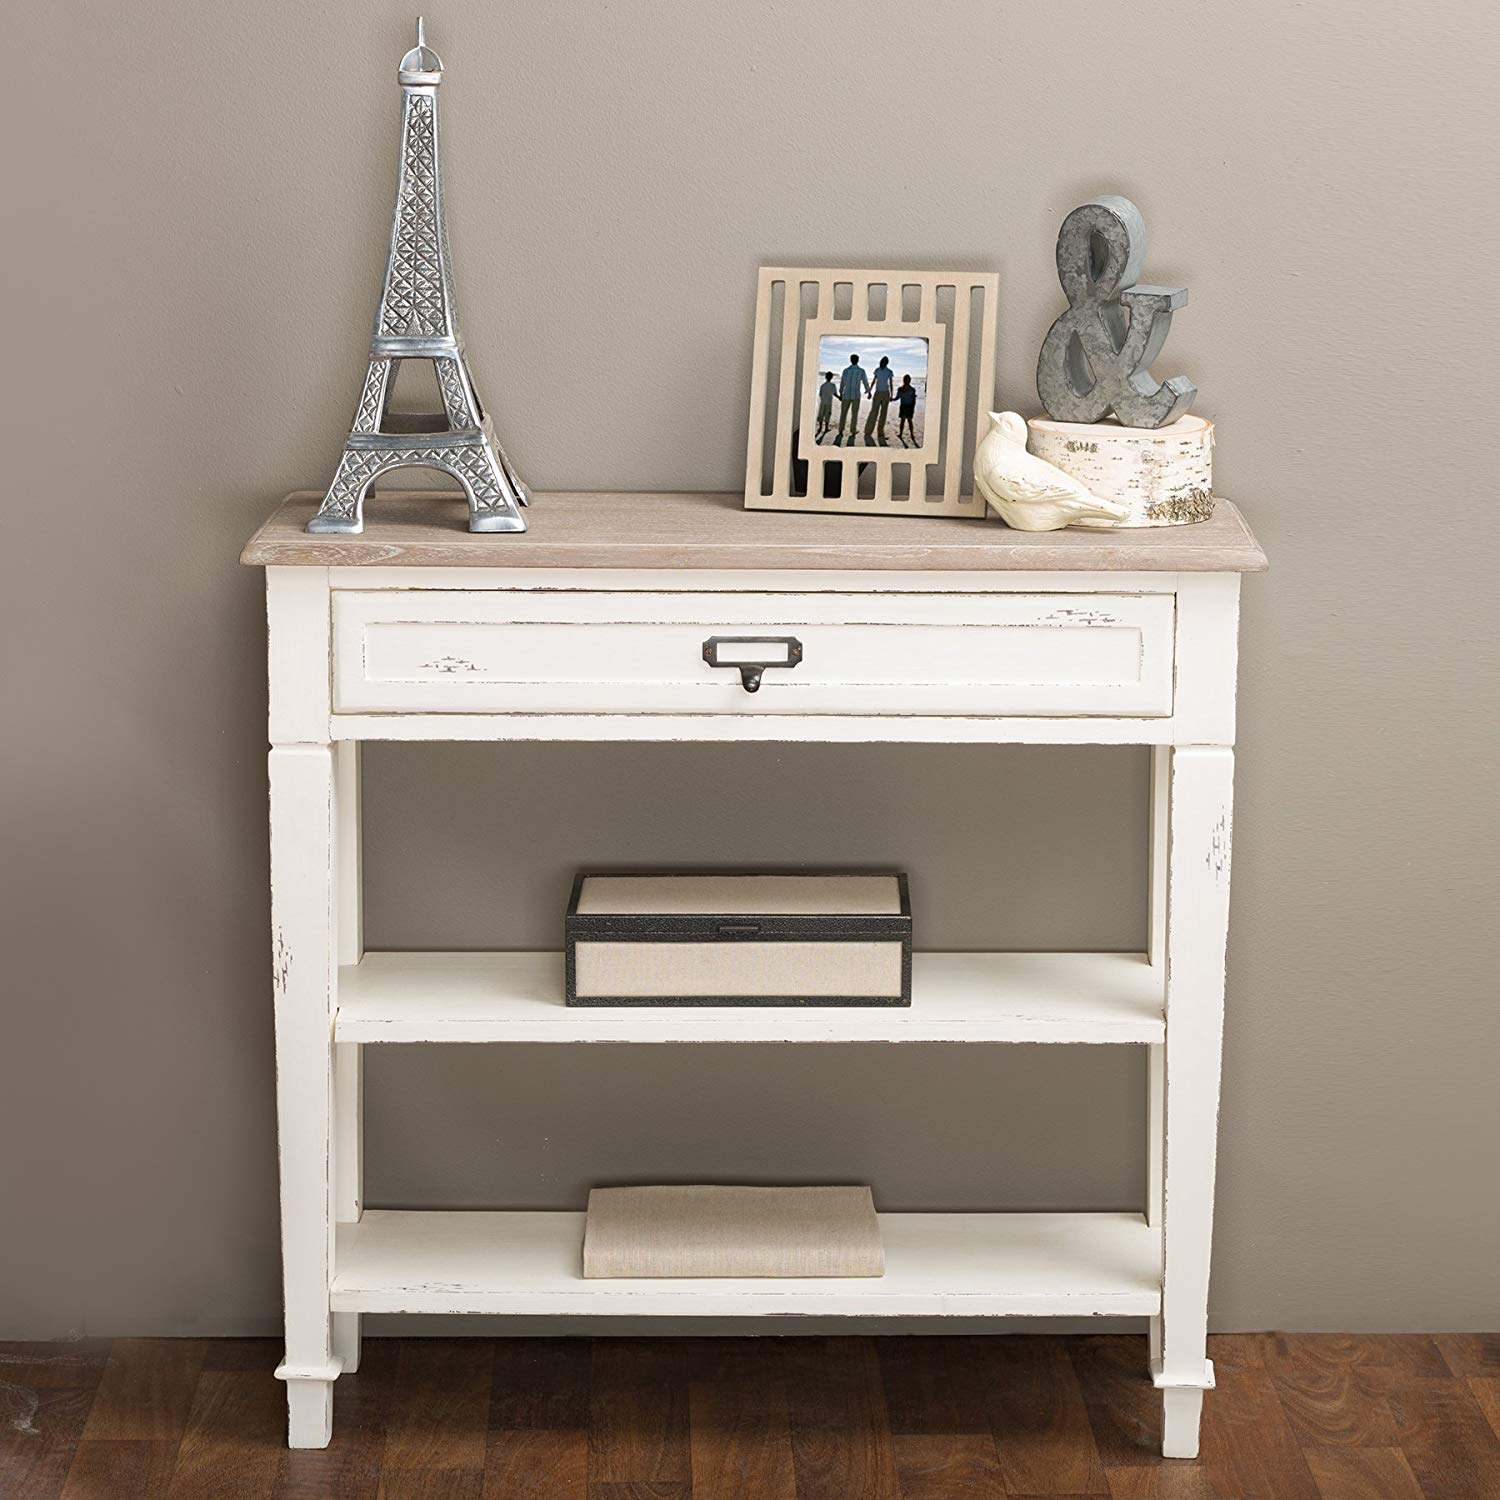 baxton studio dauphine traditional french drawer accent console table with drawers white kitchen dining large garden furniture cover lotus led lights sage green color target round